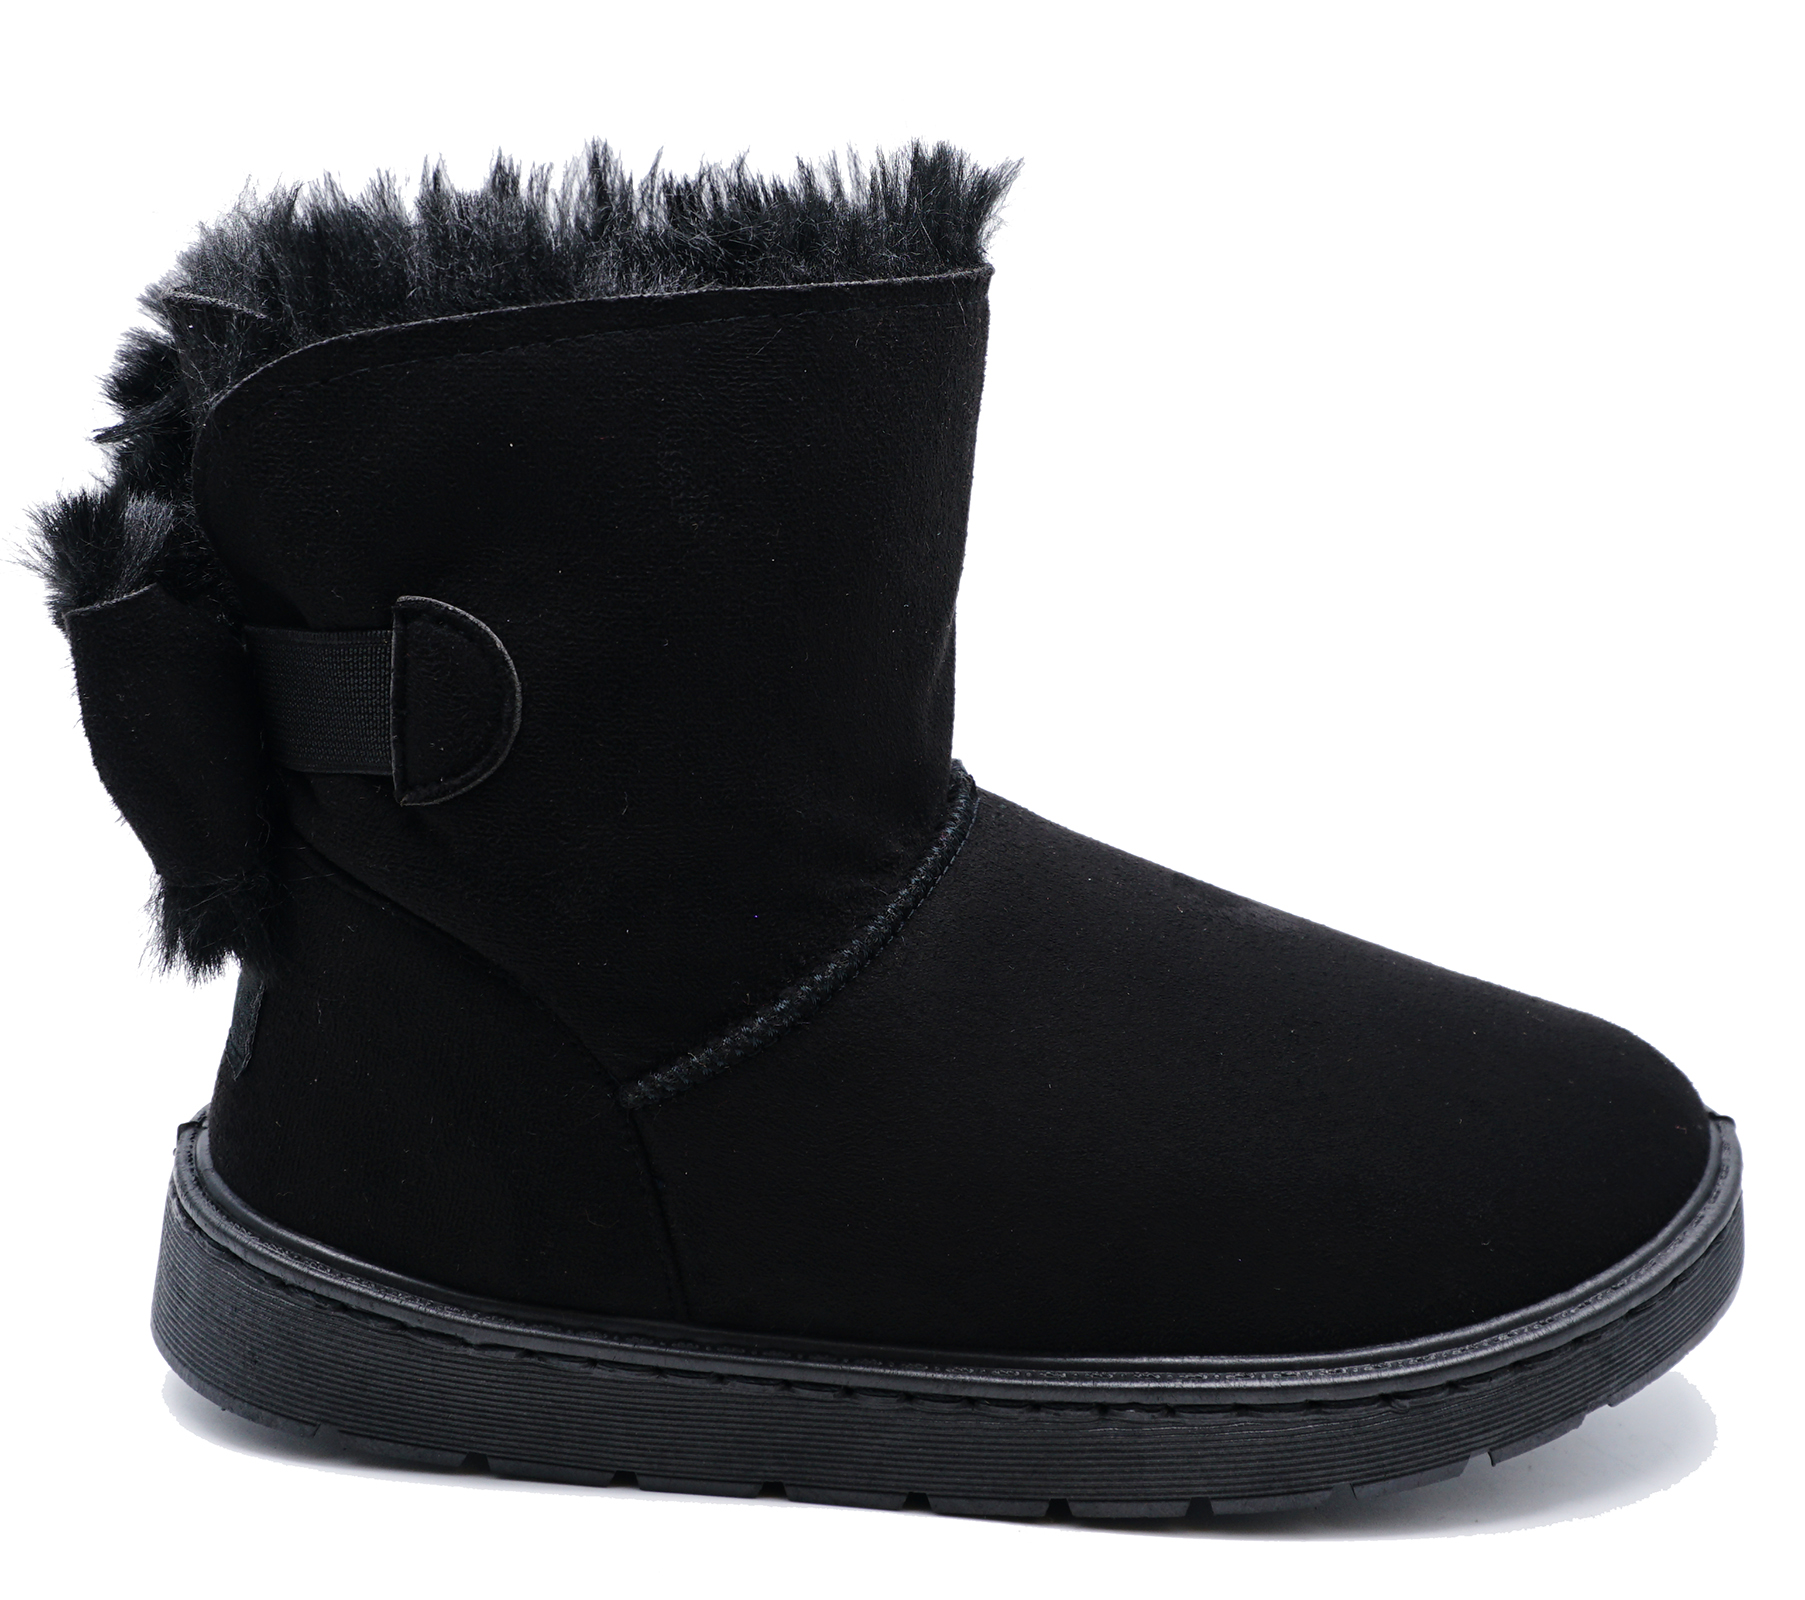 LADIES BLACK FLAT FUR LINED PULL-ON COMFY WARM WINTER CASUAL SNUGG BOOTS UK 3-8